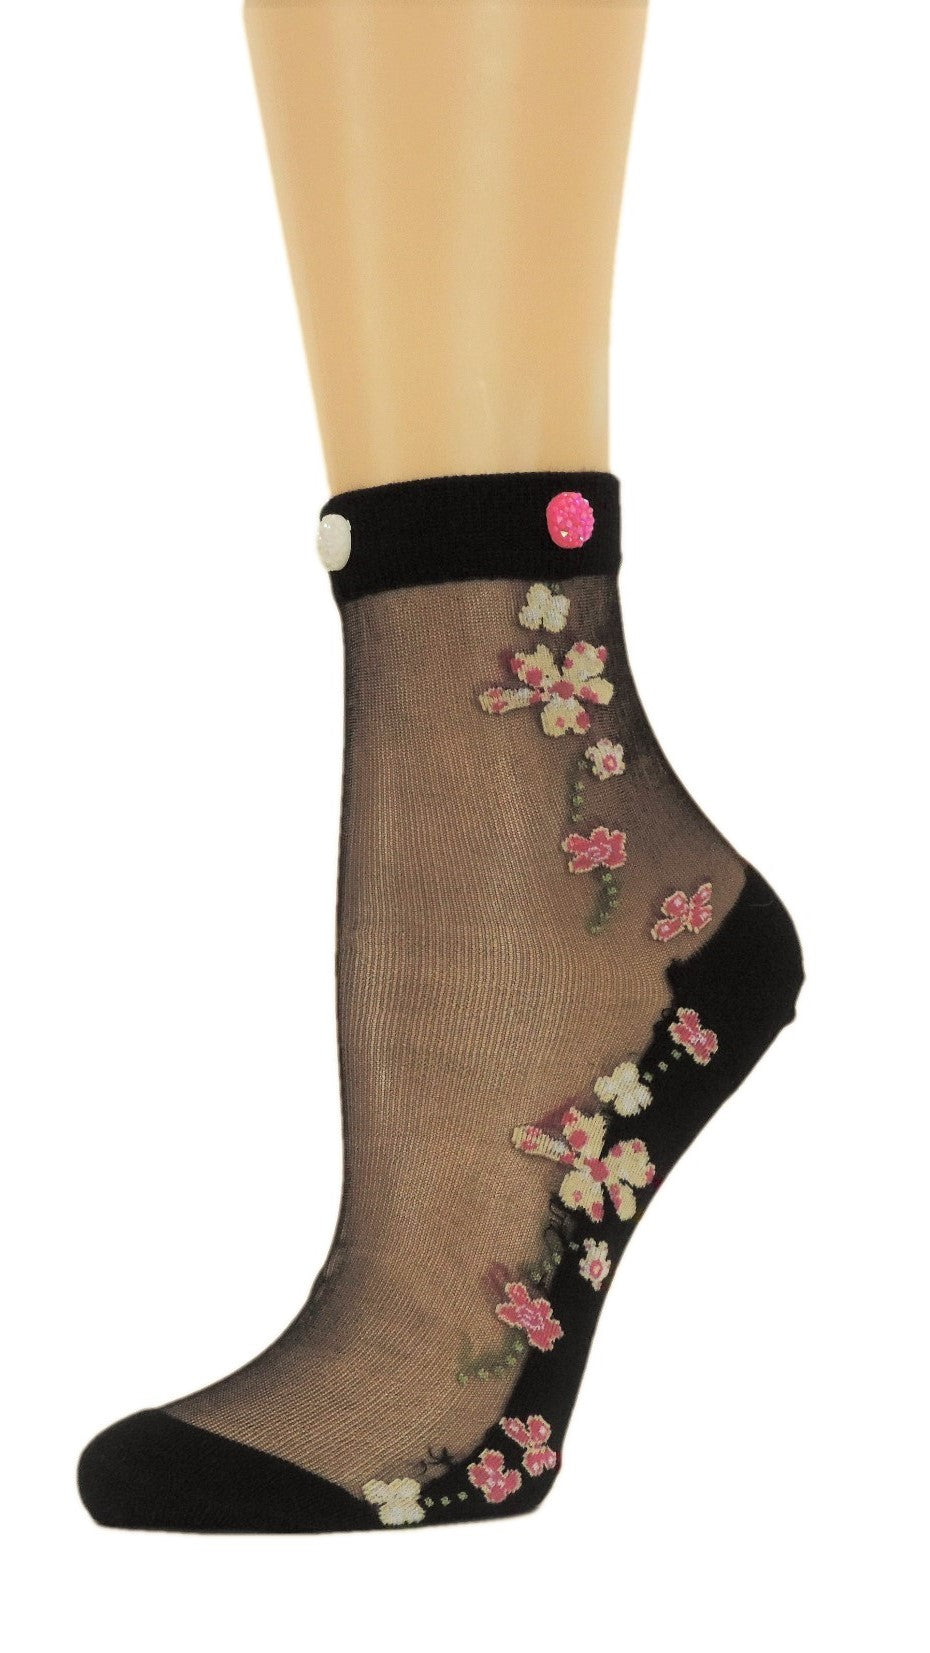 Summer Flowers Custom Sheer Socks with beads - Global Trendz Fashion®